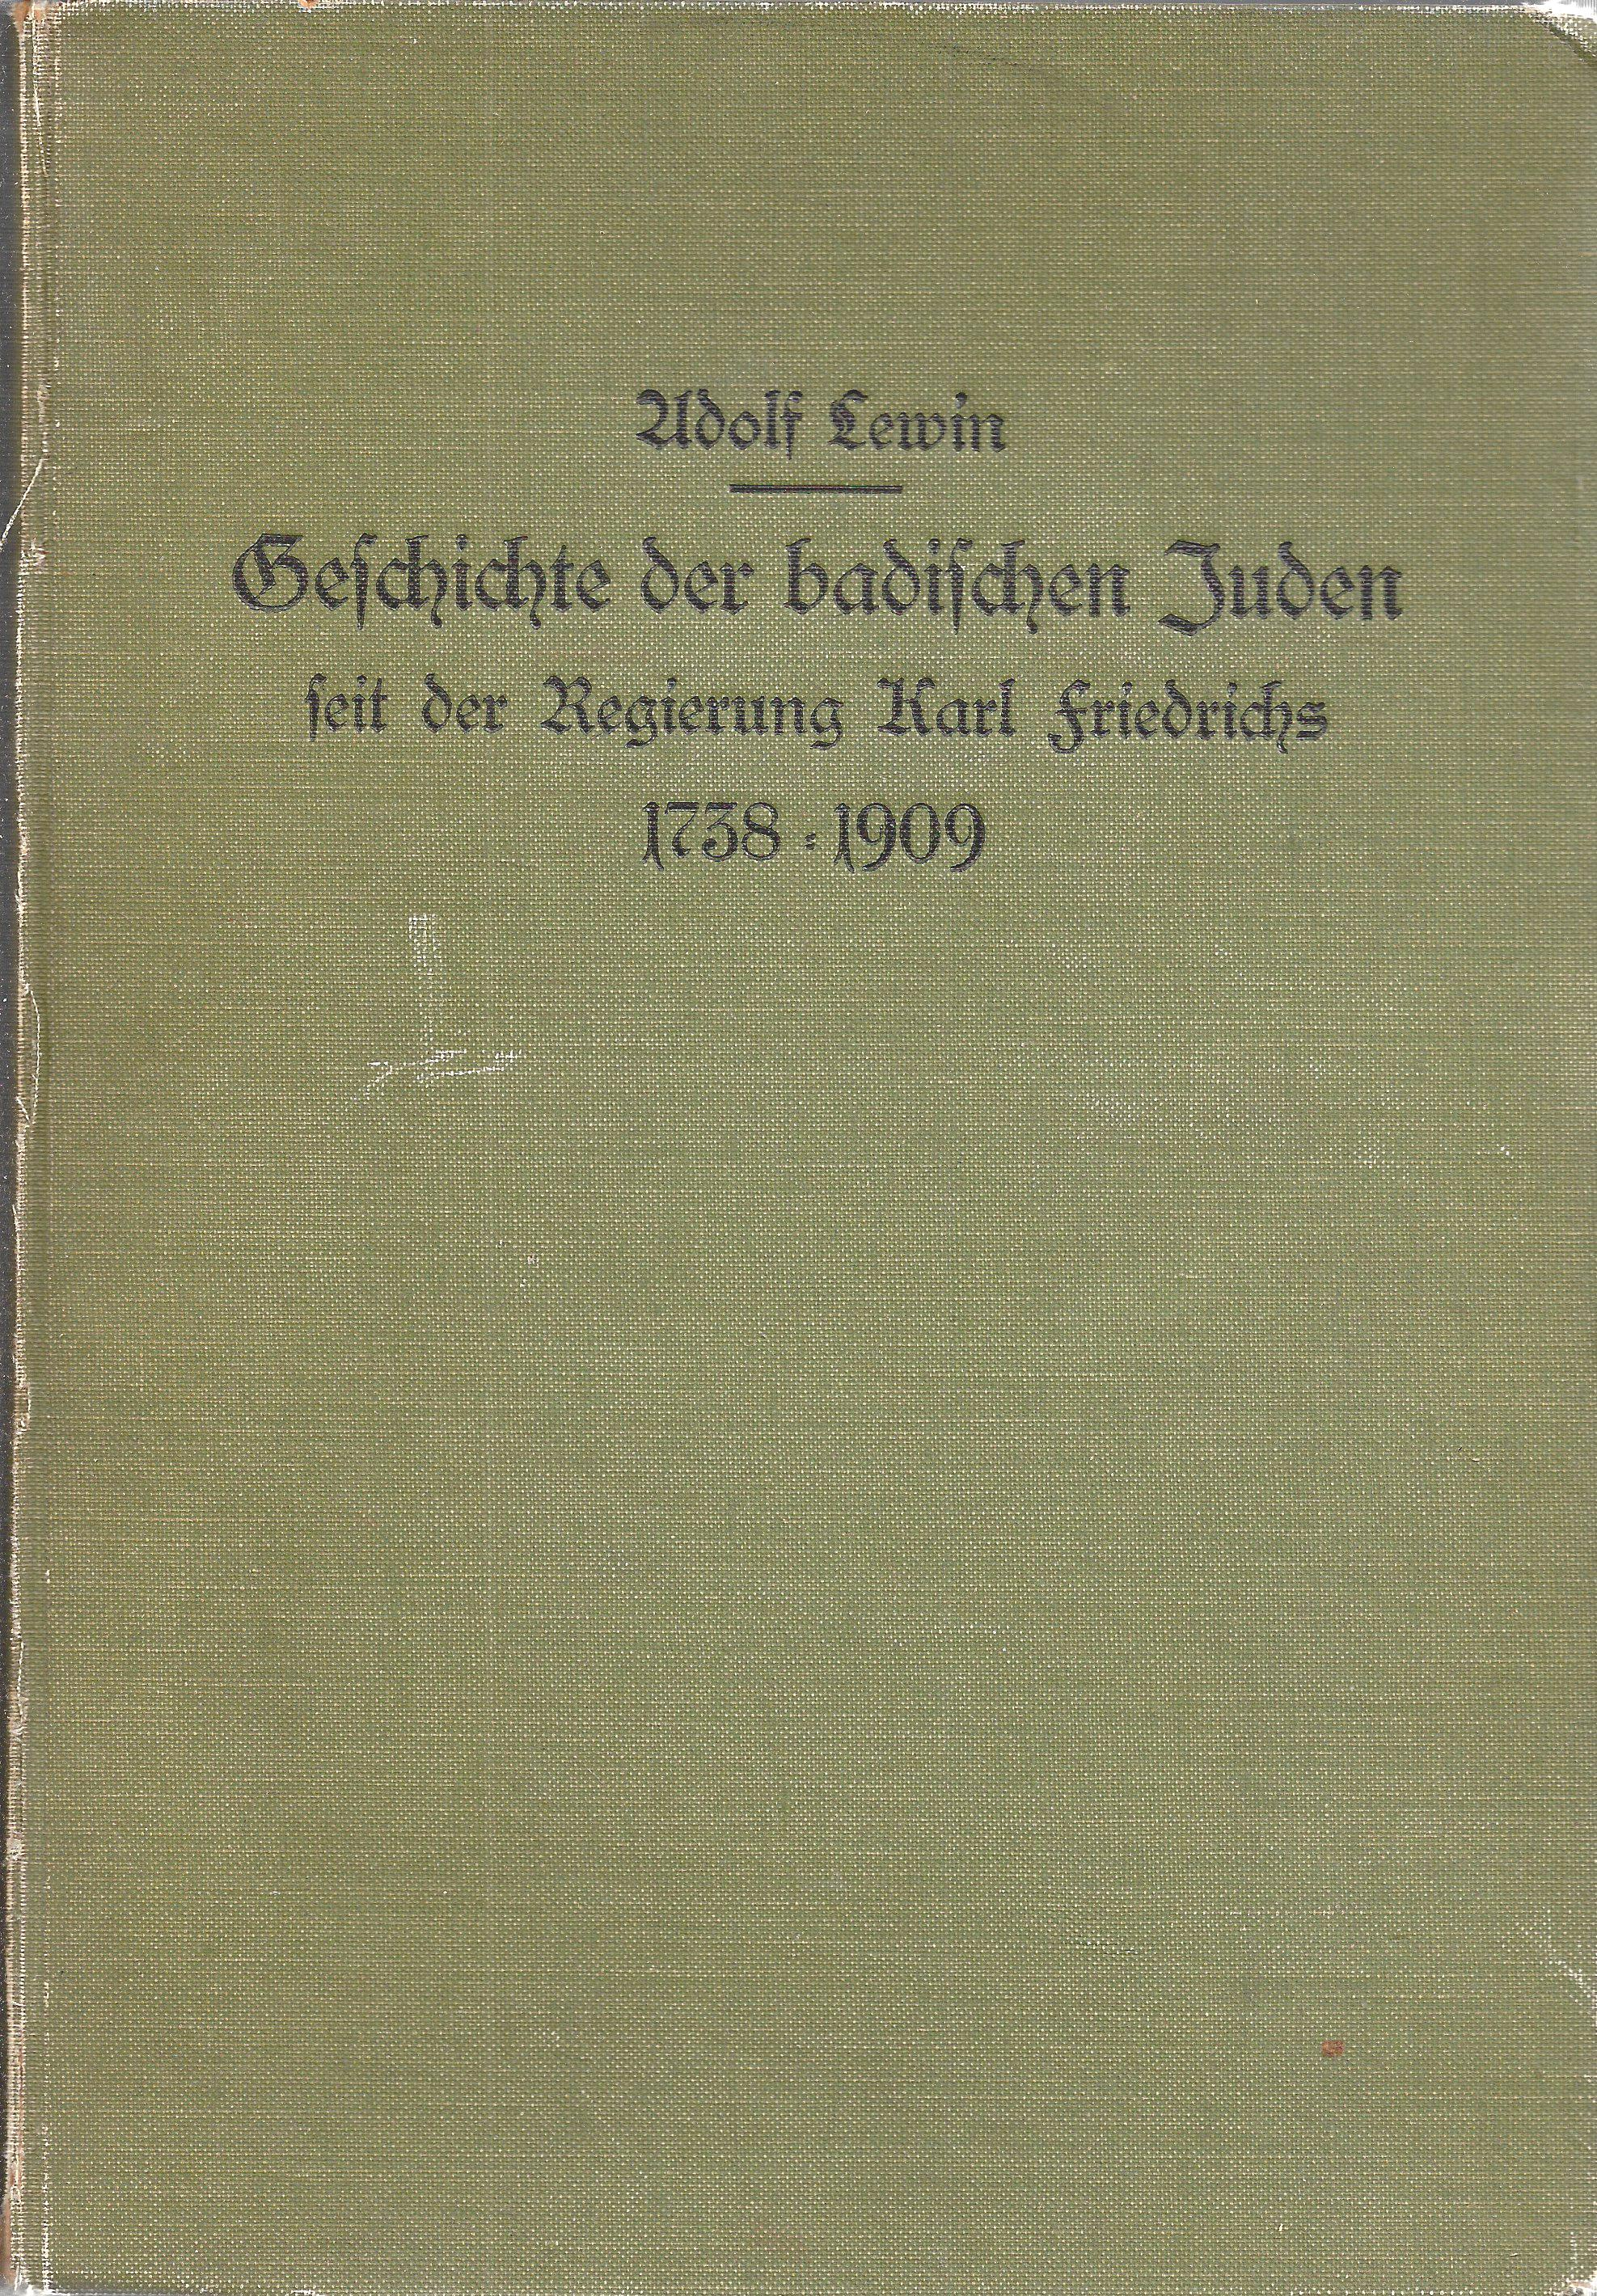 Karlsruhe; Kommissionsverlag G. Braun, 1909. Original Green Cloth Boards.  8vo. VI, 508 Pages. 25 Cm. First Edition. In German.